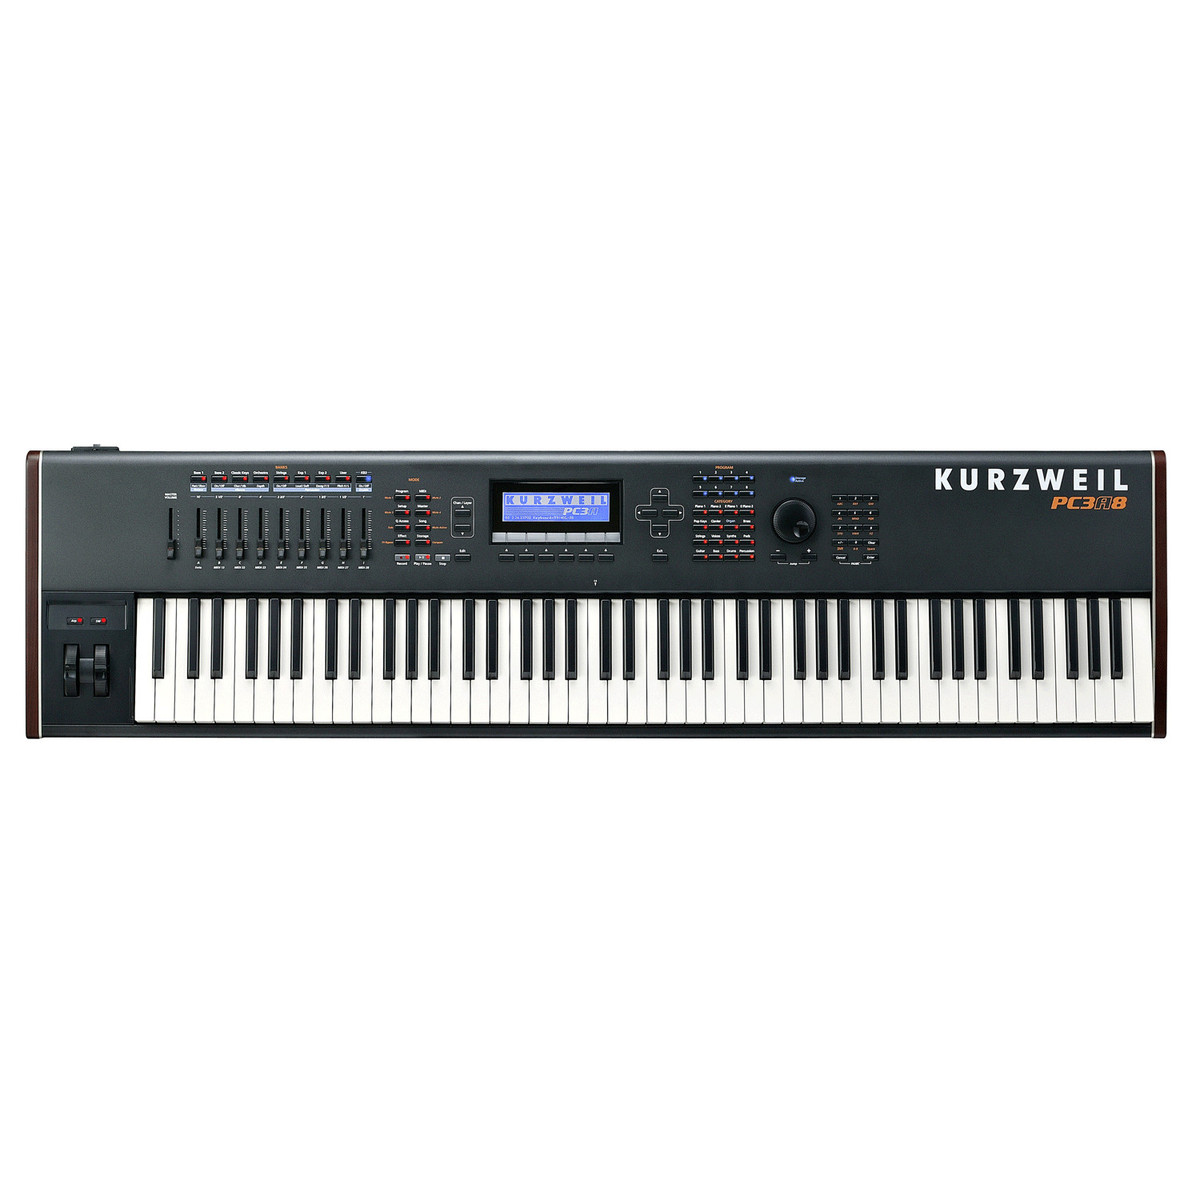 Kurzweil pc3a8 controller keyboard at gear4music for Yamaha p120 price